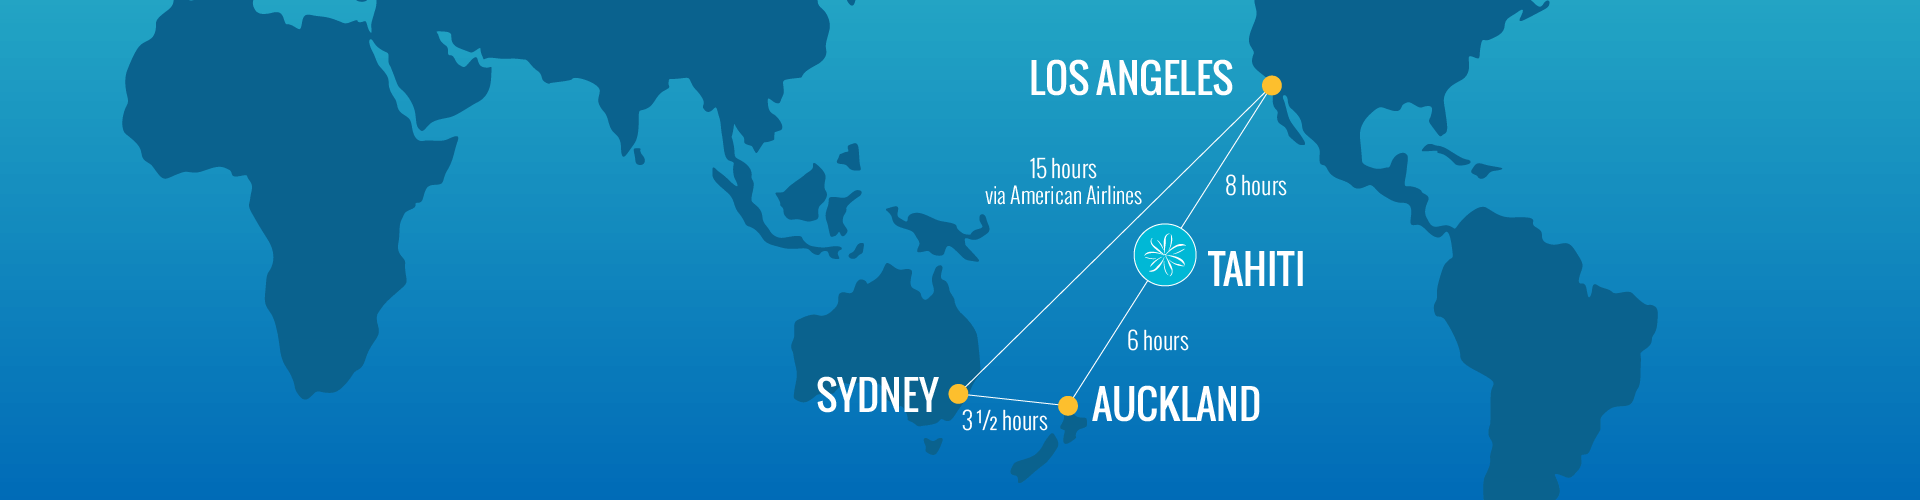 LAX to Tahiti to Auckland to Sydney Route Map